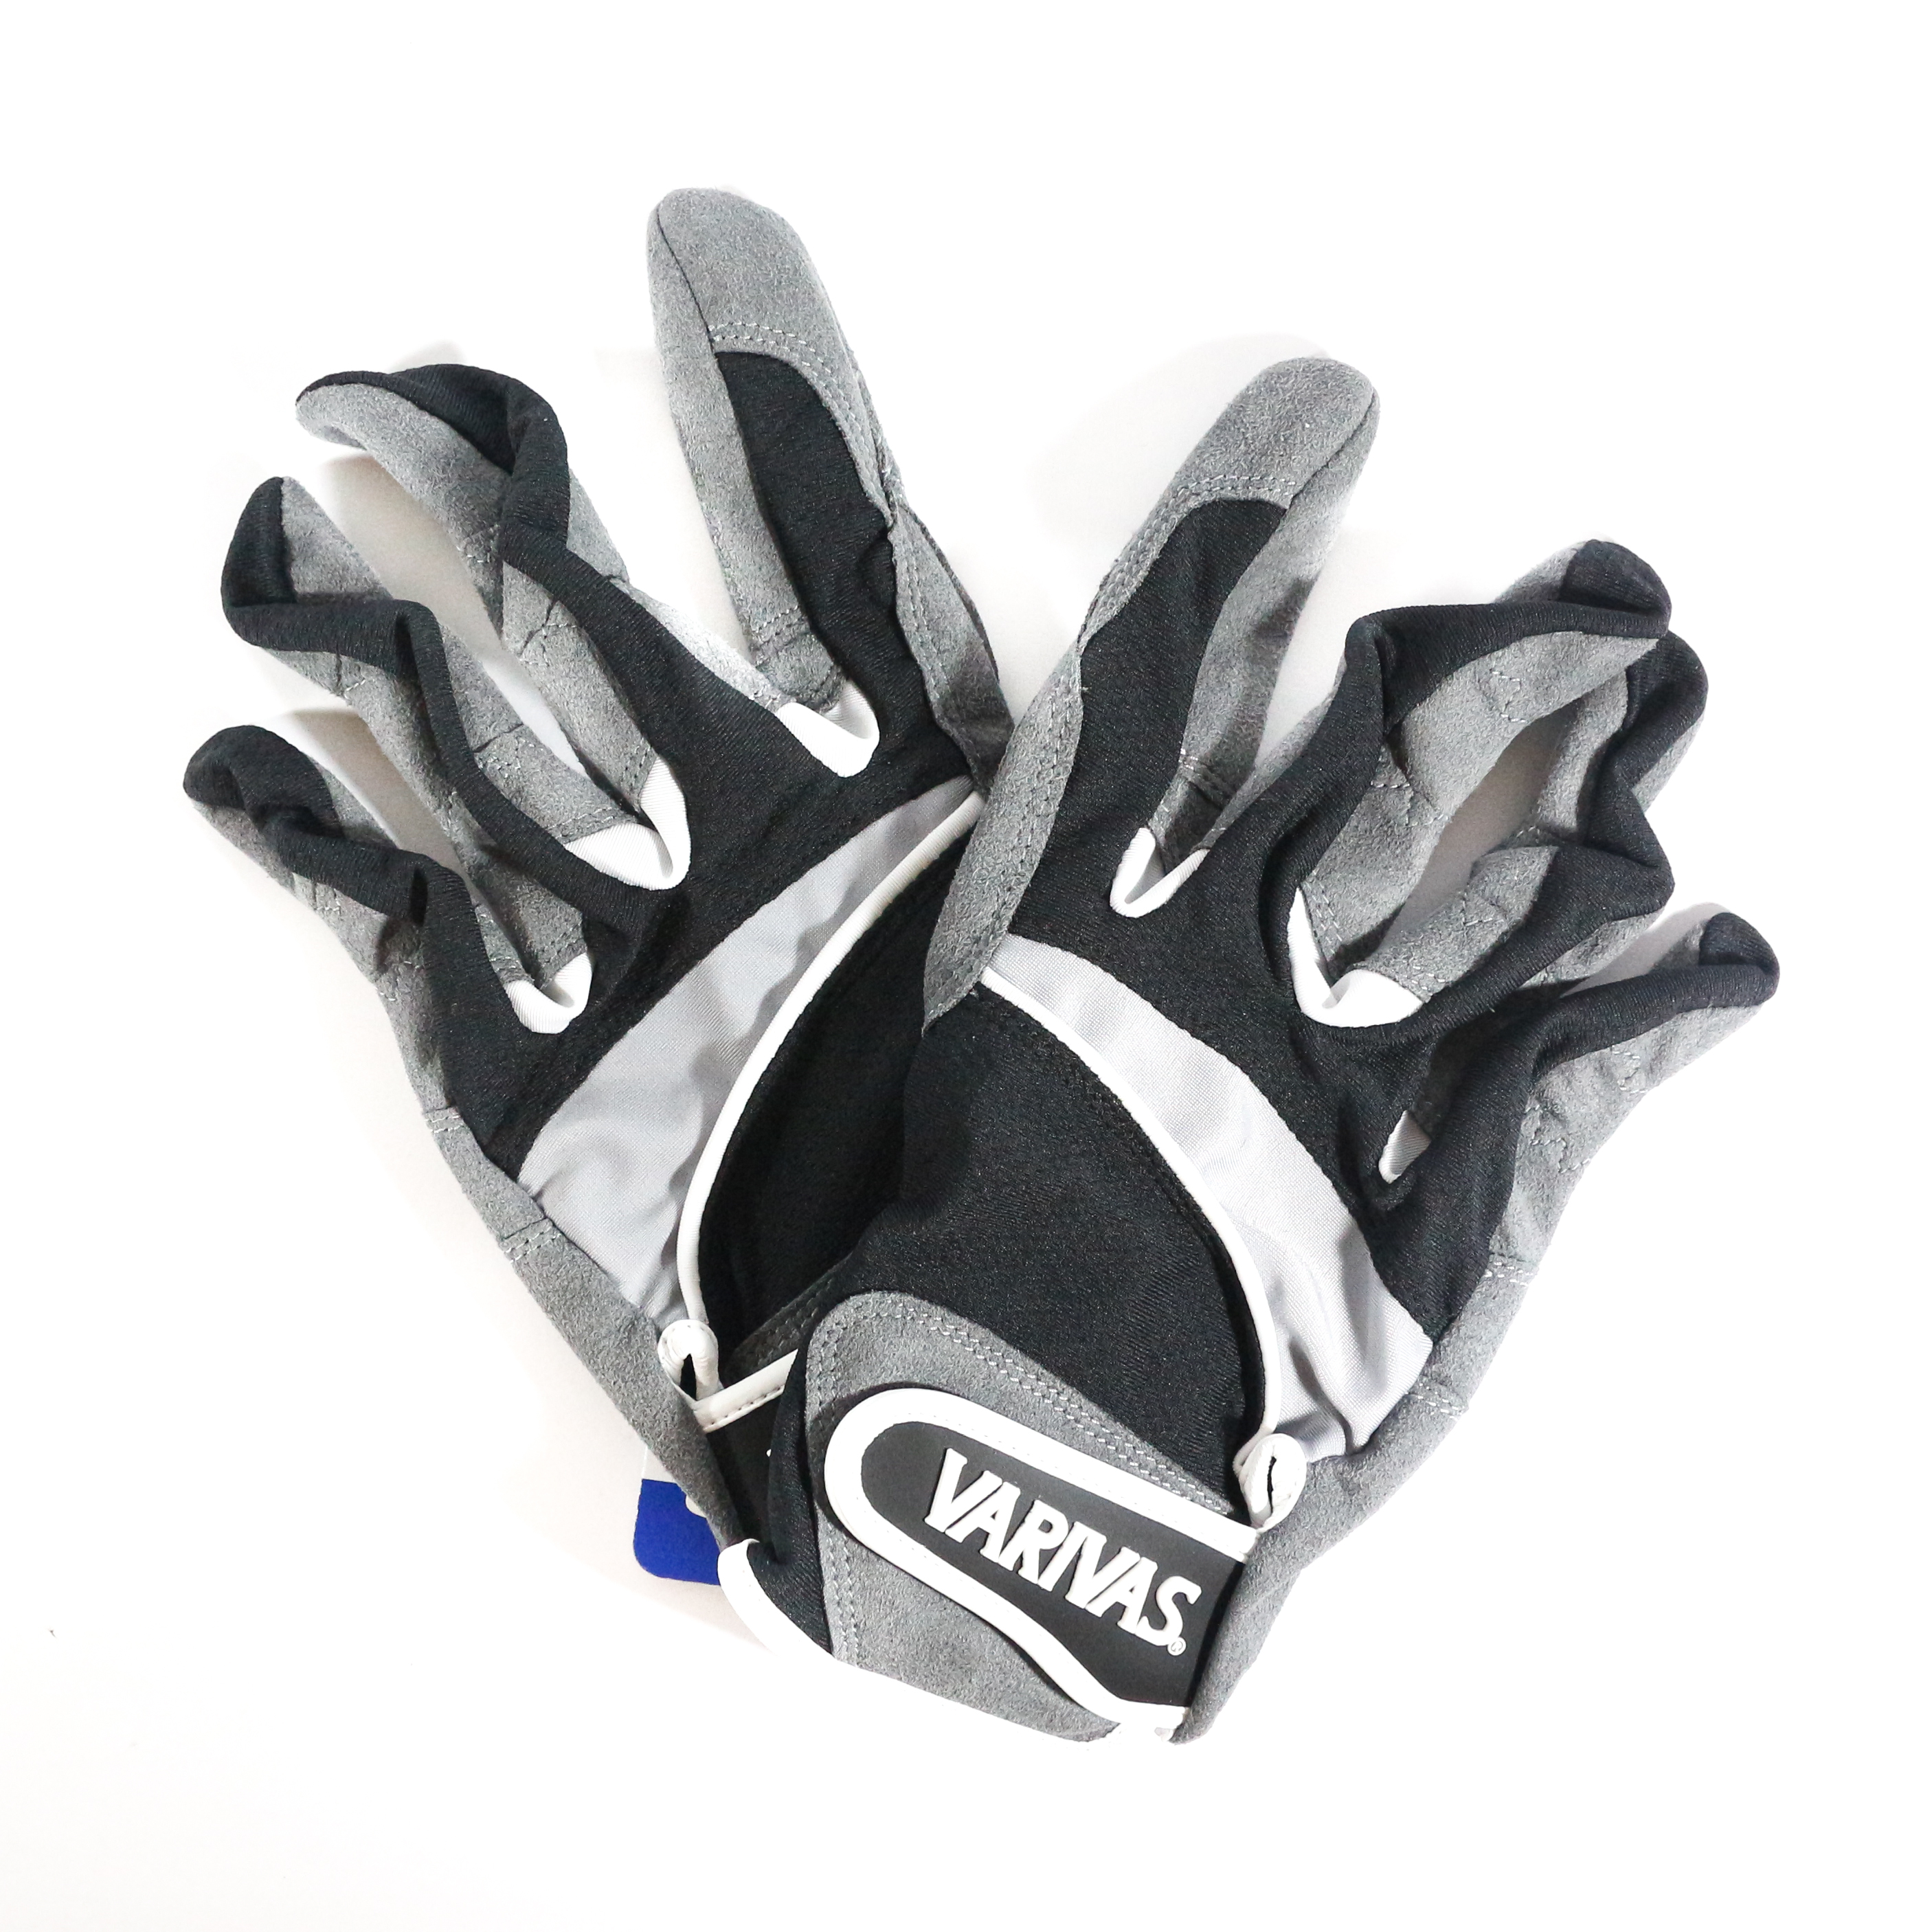 Varivas VAG-20 Mesh Gloves Ergo Grip Black Size L (0504)